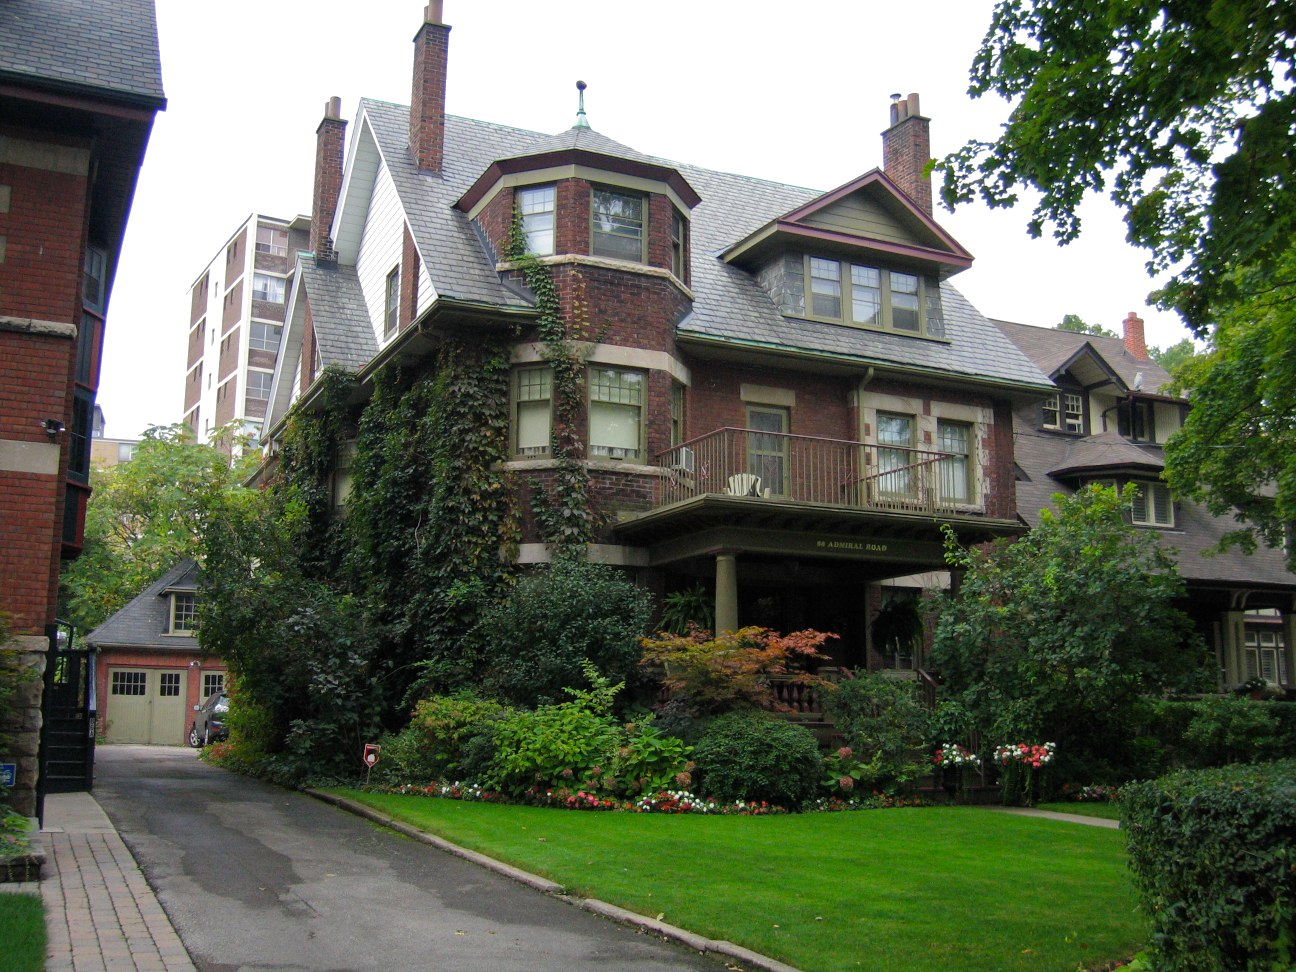 Brown Victorian mansion with green lawn, shrubs and ivy on Bathurst and Bloor West in The Annex neighbourhood.